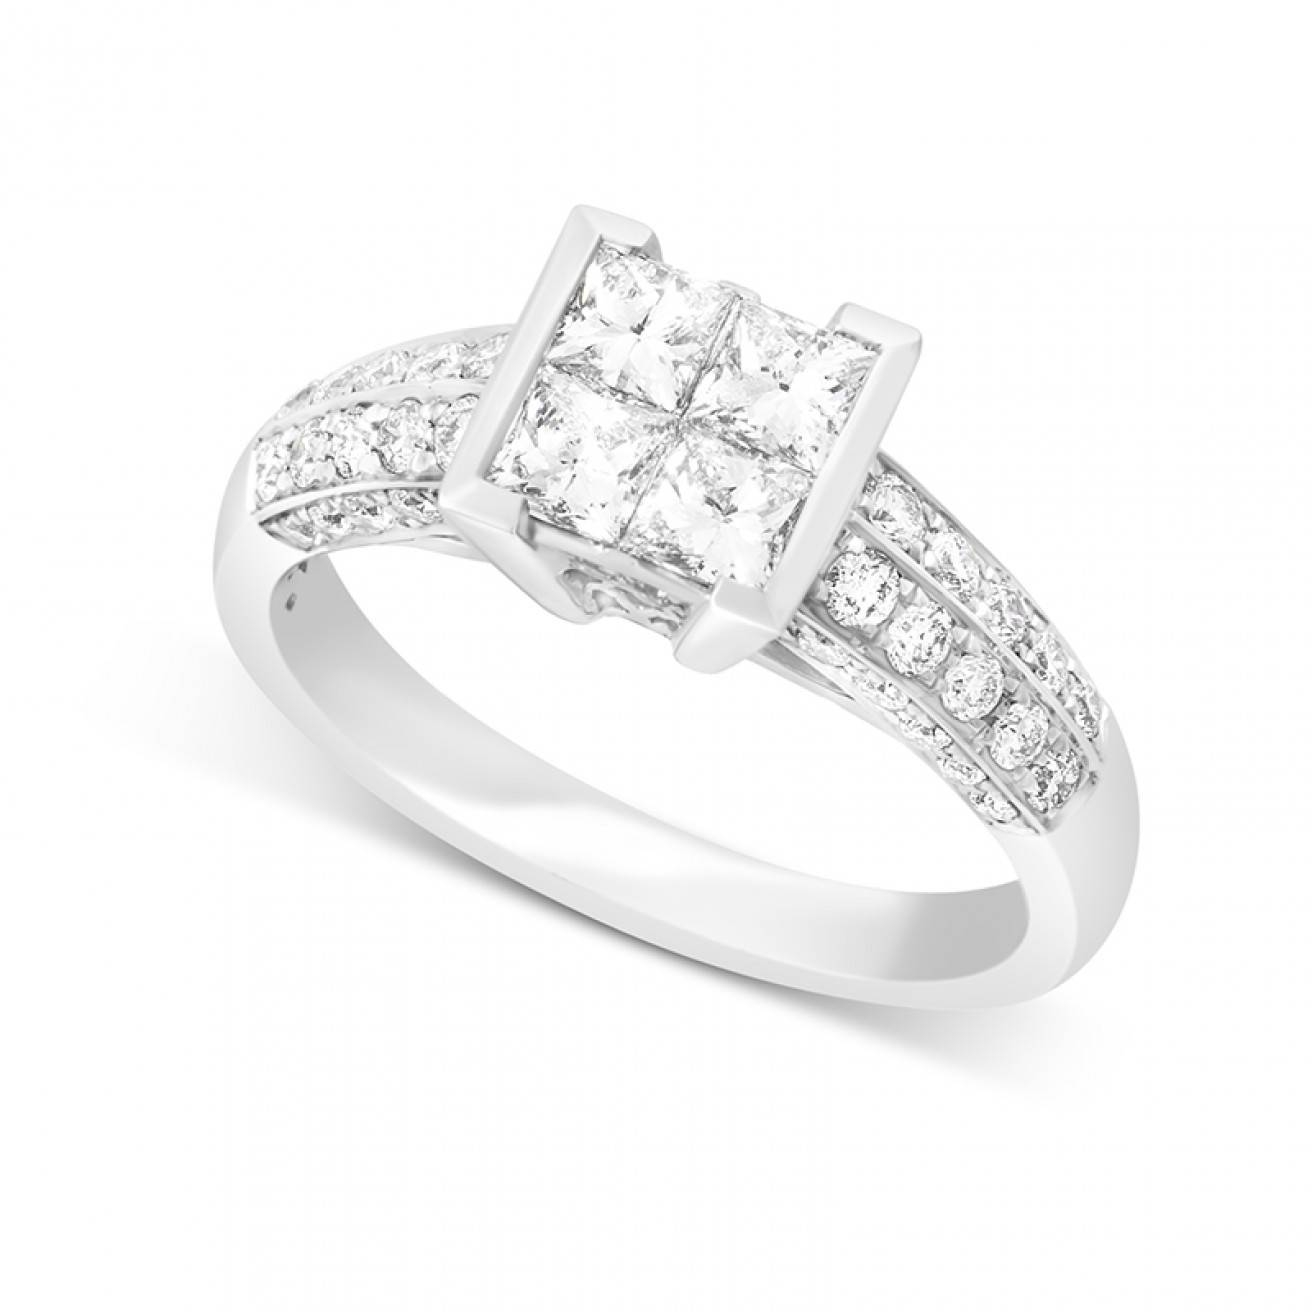 Buy Diamond Engagement Rings Online – Fraser Hart Intended For Discontinued Engagement Rings (View 1 of 15)